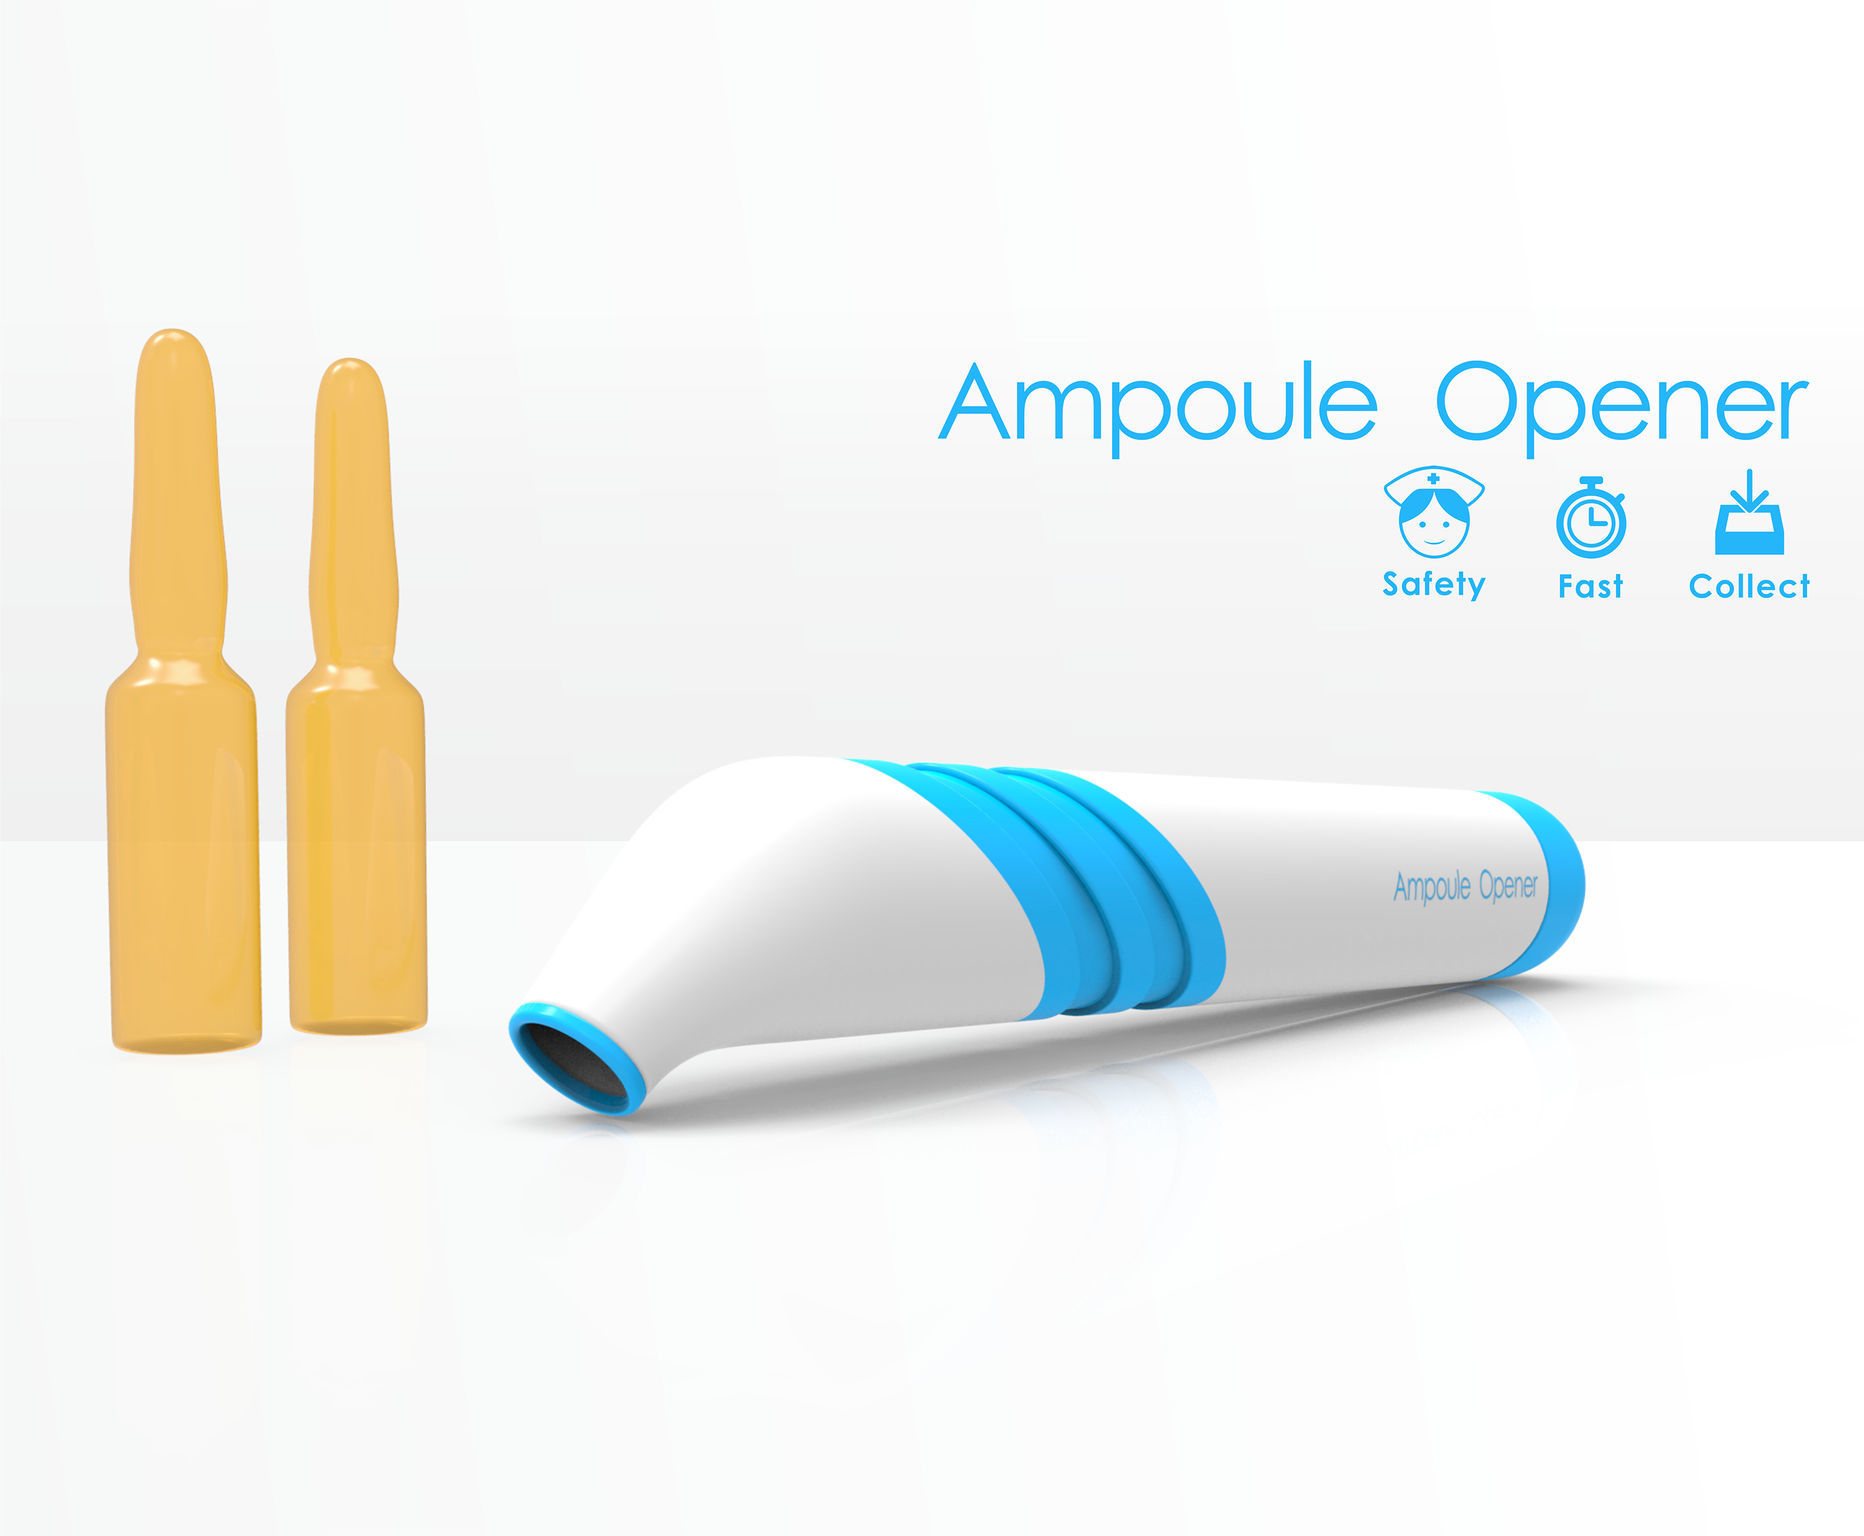 Ampoule Opener   iF WORLD DESIGN GUIDE